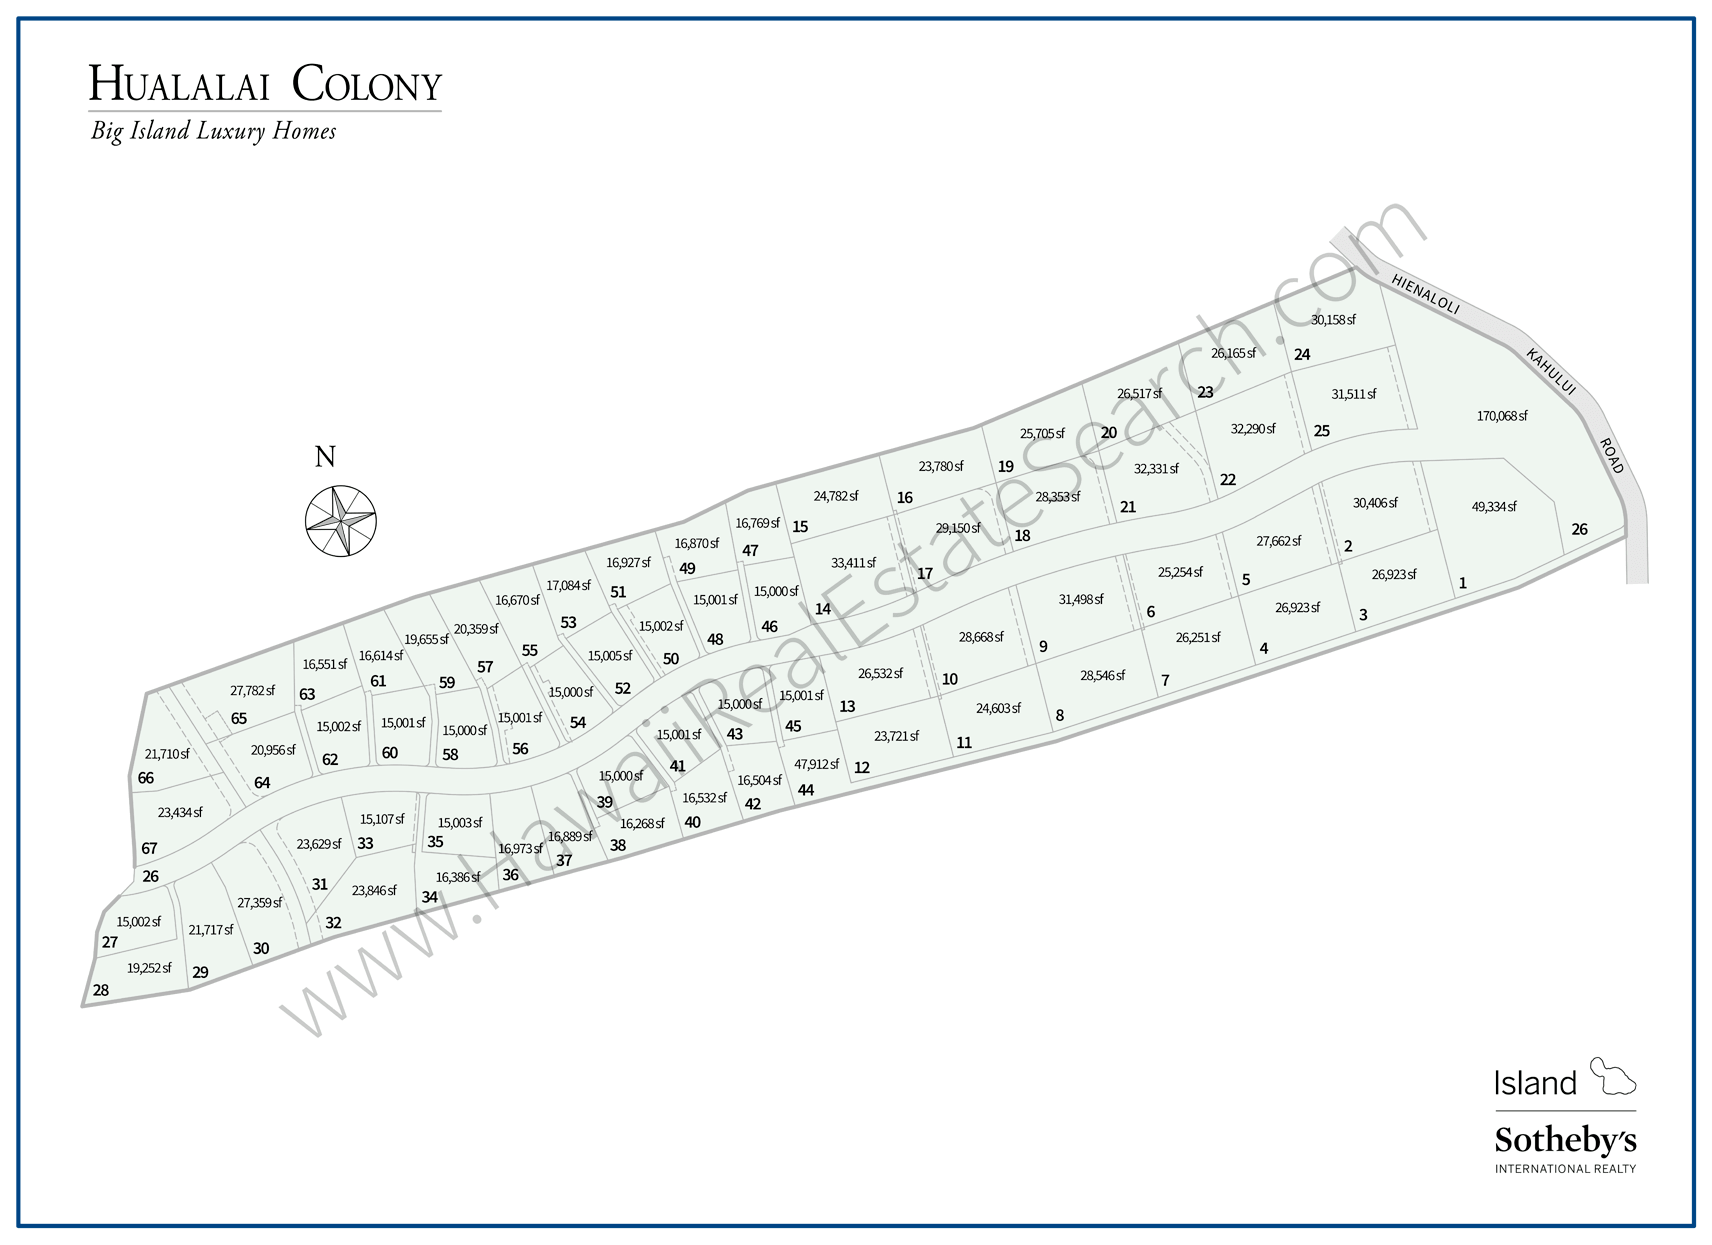 Hualalai Colony Neighborhood Map